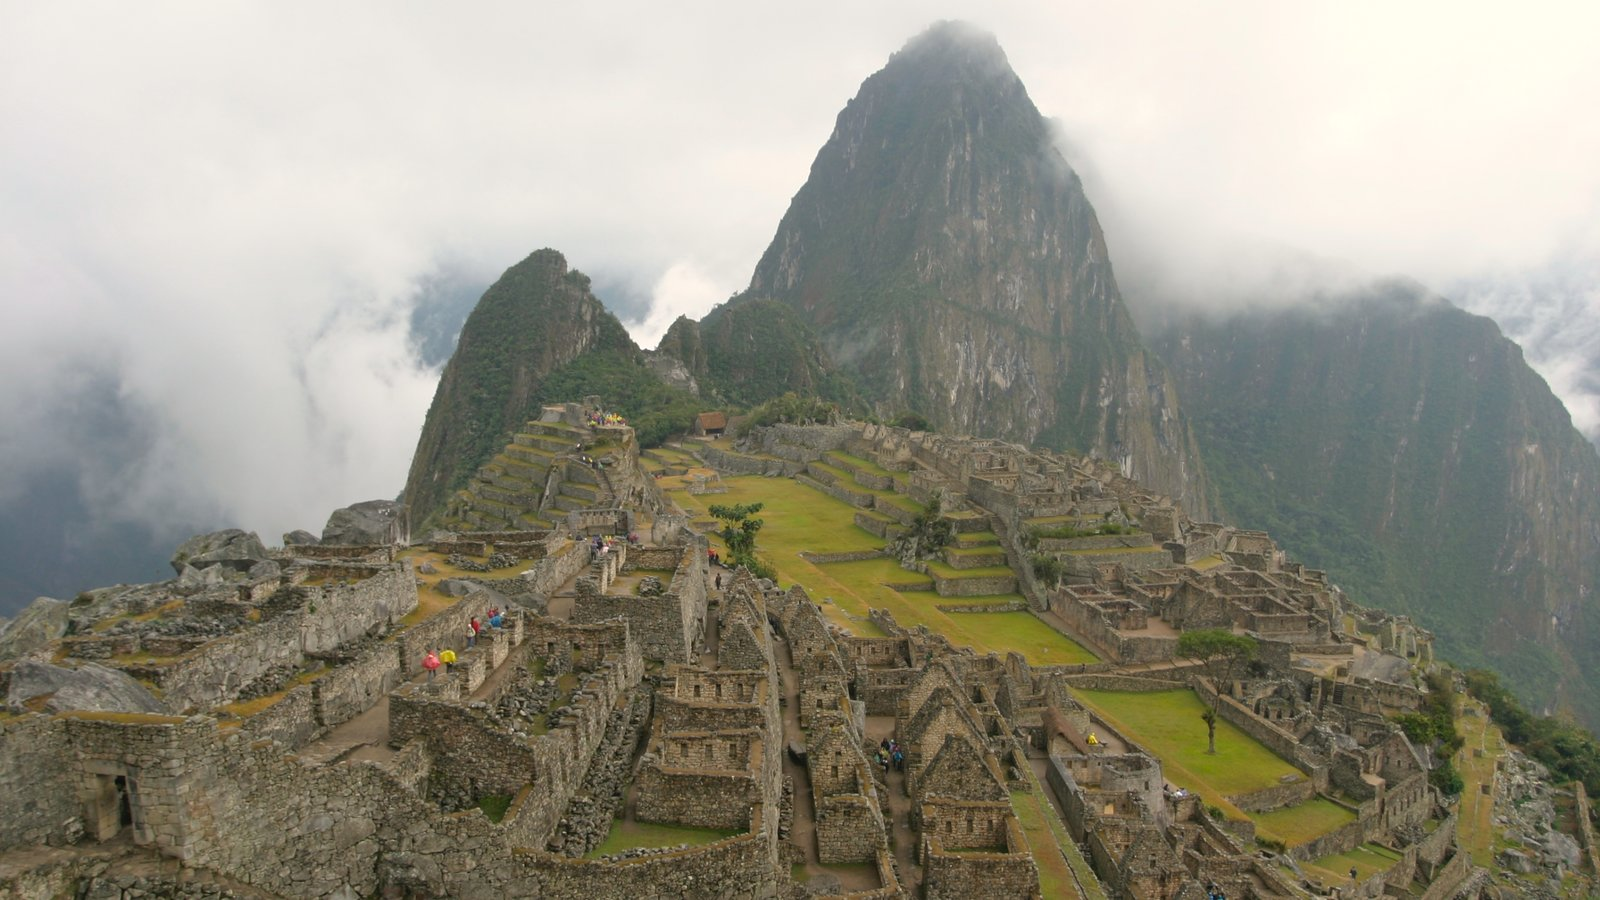 Machu Picchu showing mountains, mist or fog and a ruin